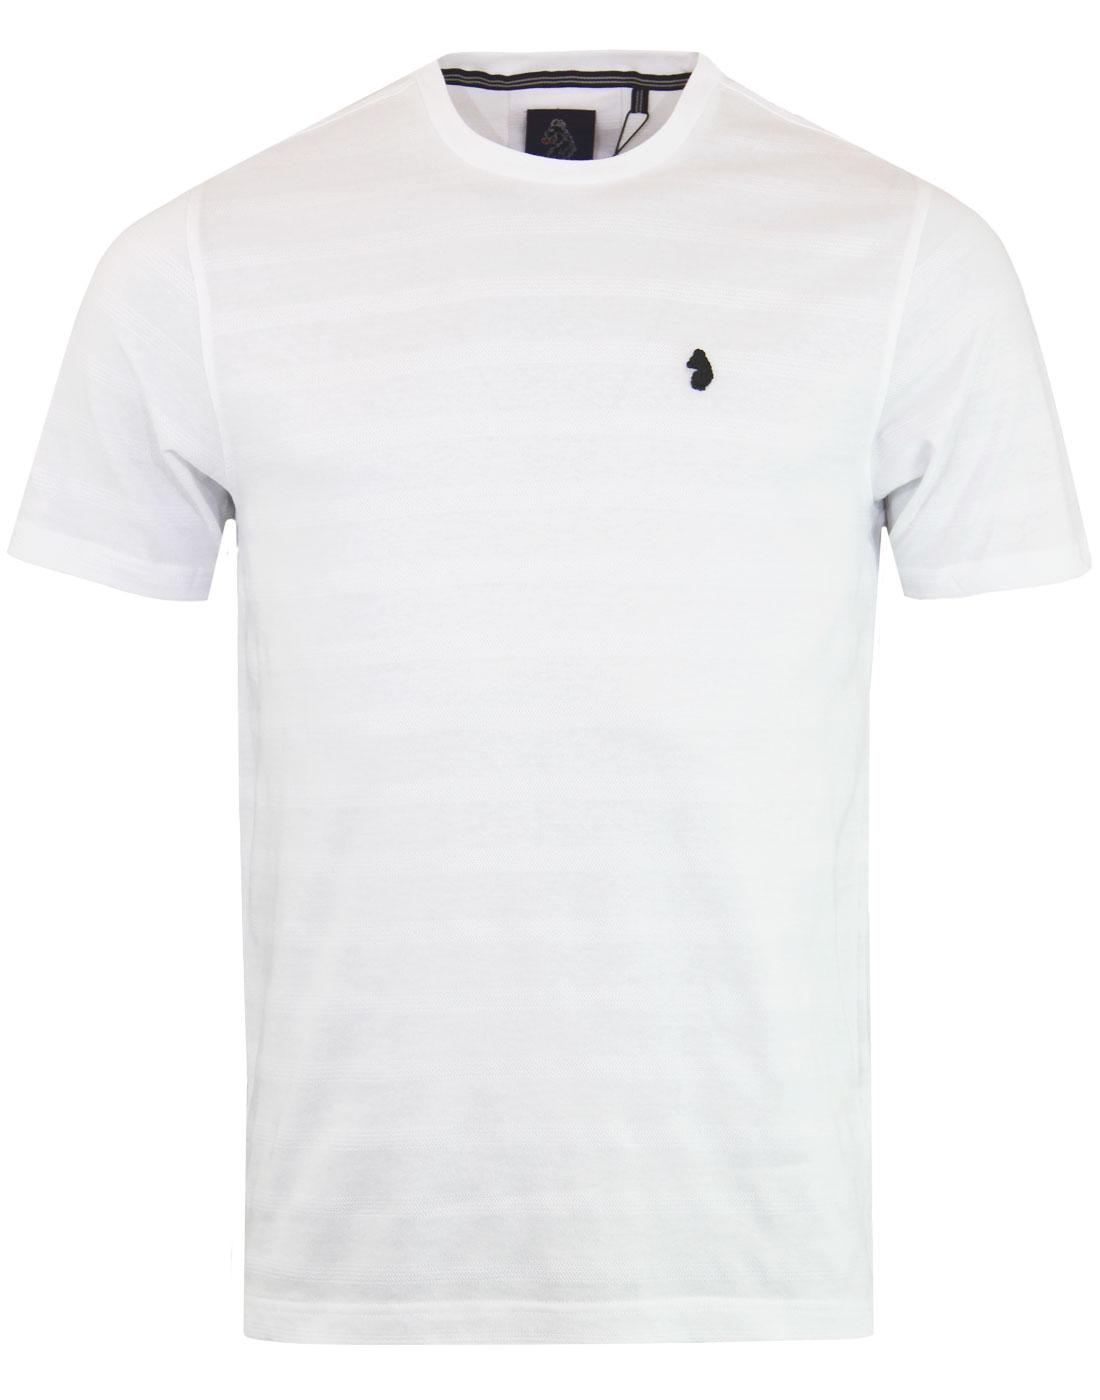 Cultraised LUKE Retro Micro Rib Crew T-shirt WHITE